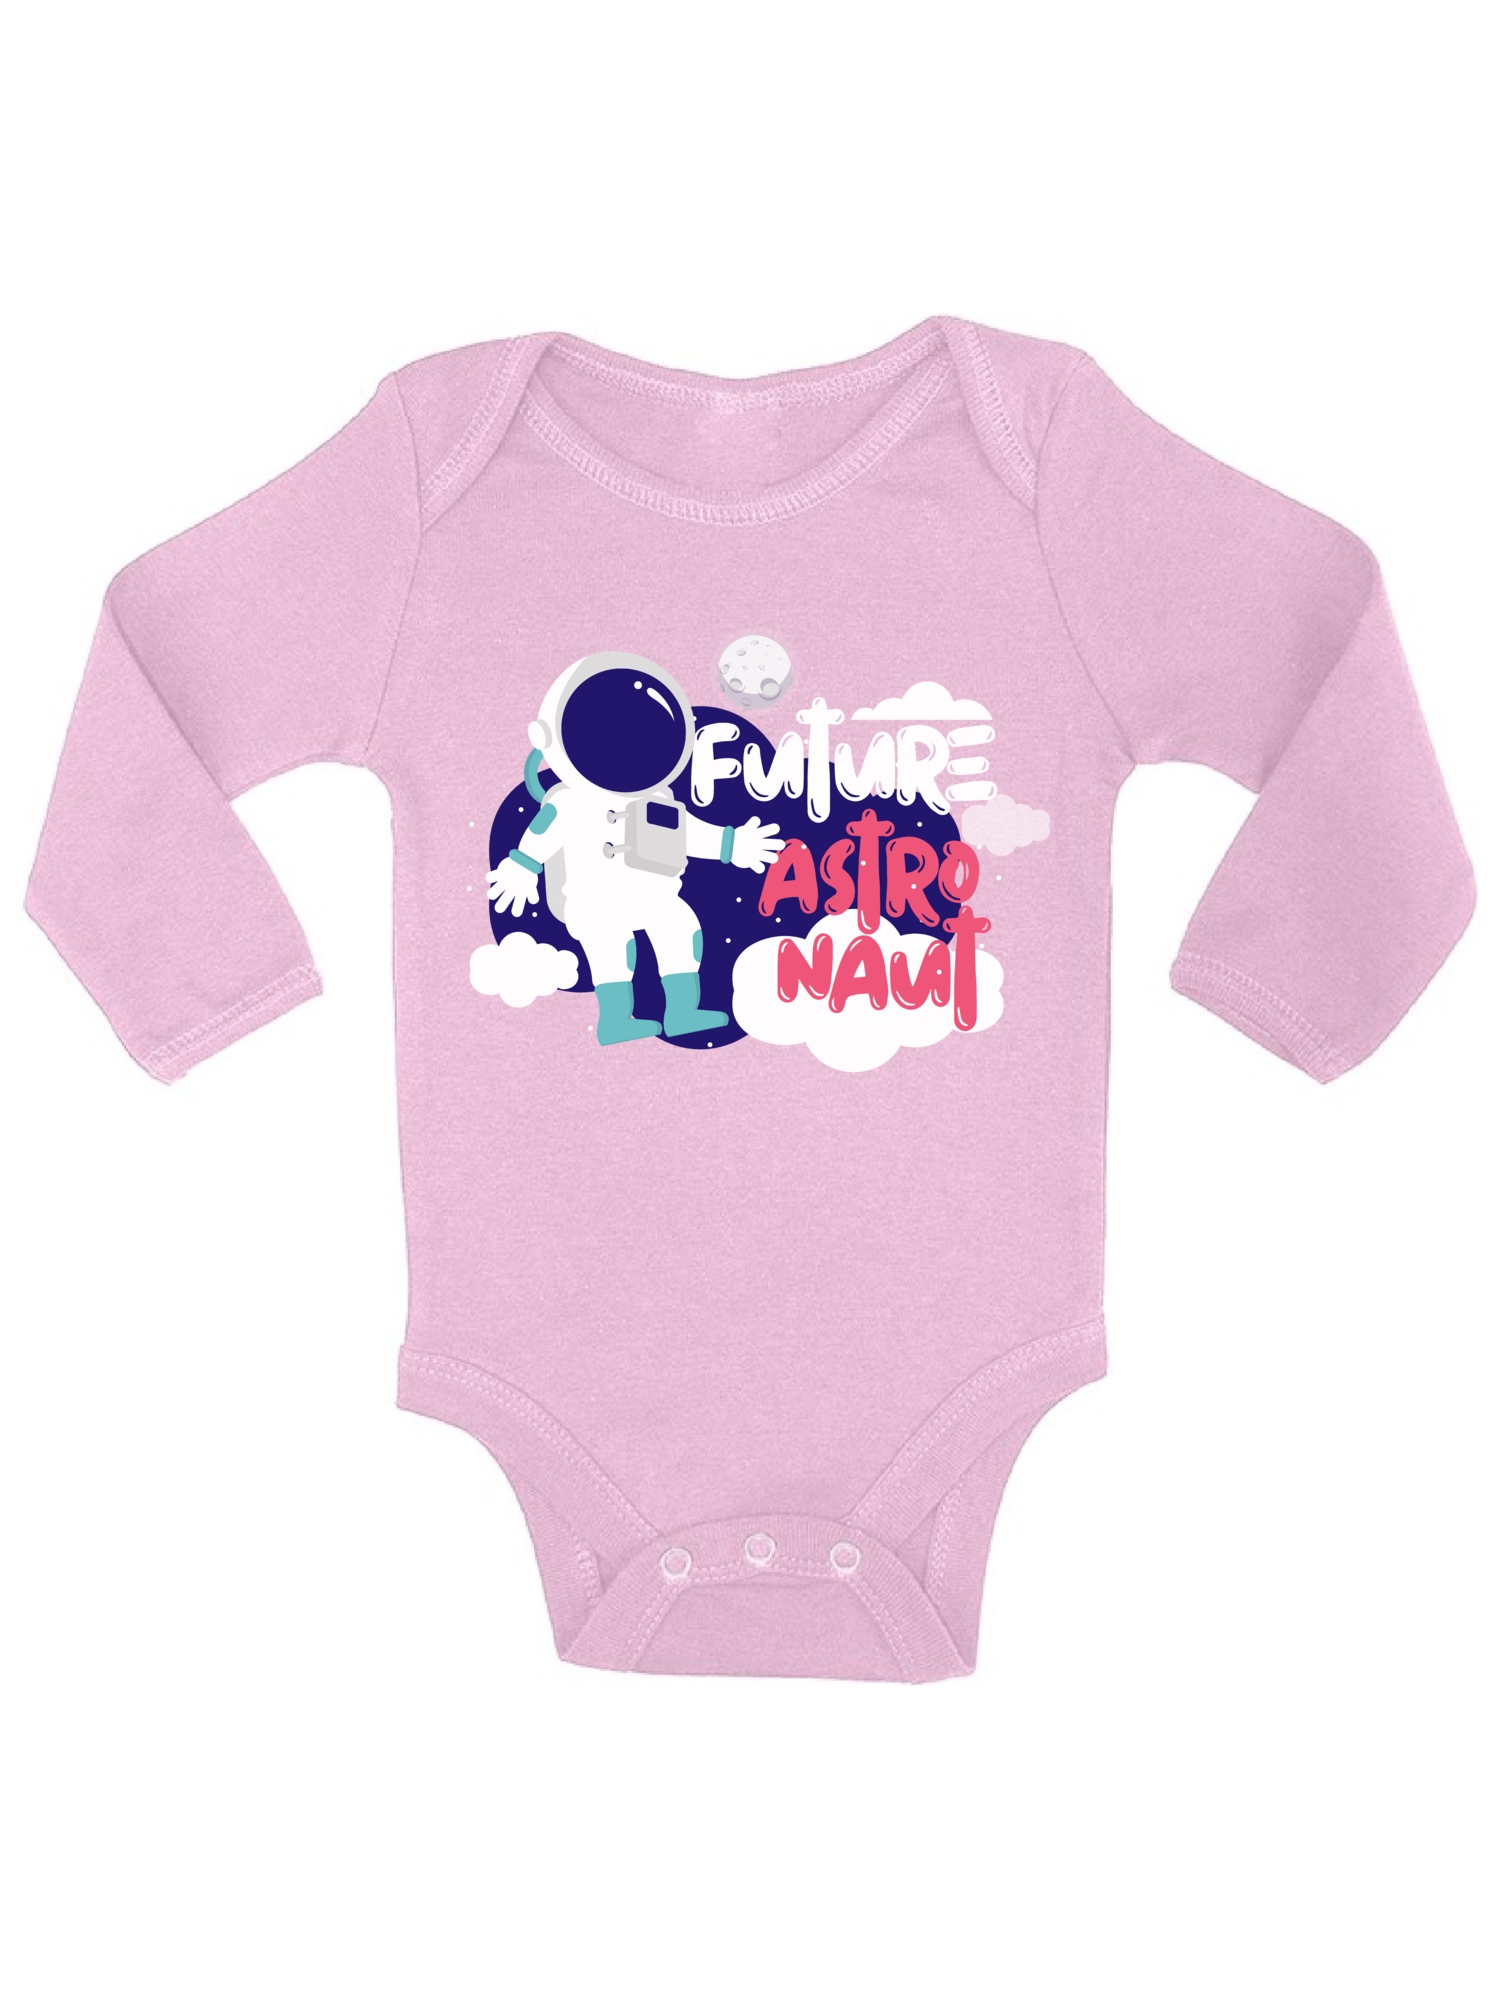 Future Teacher Baby Clothing Kids Clothing Baby Doctor Newborn Baby Gifts